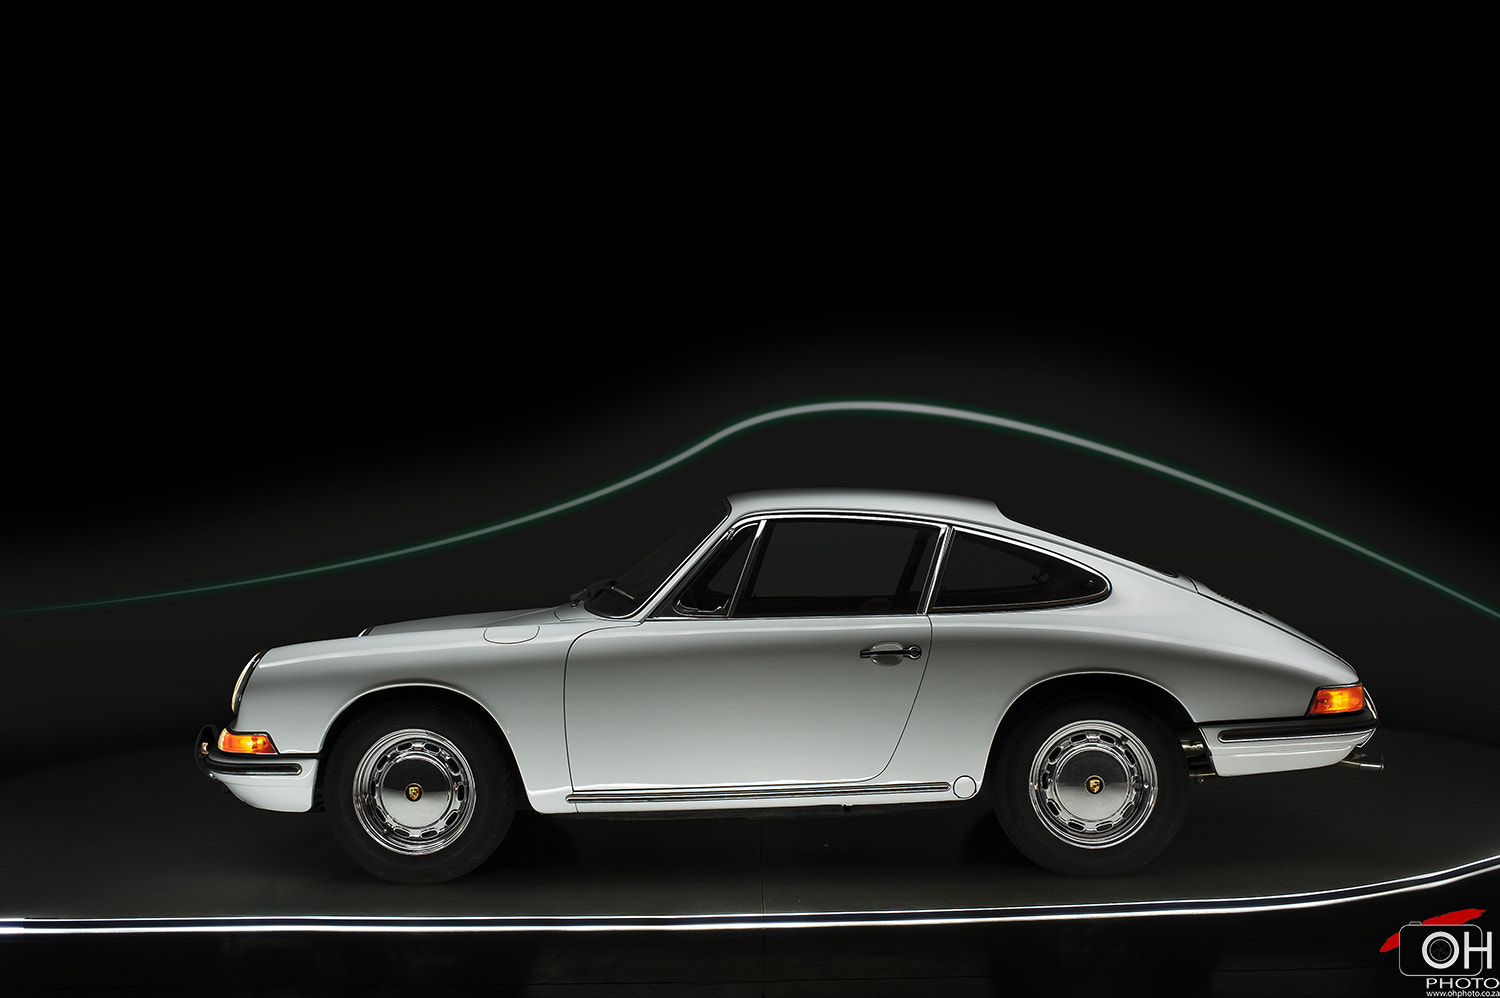 Photograph Porsche 911 1963 by Oliver H on 500px